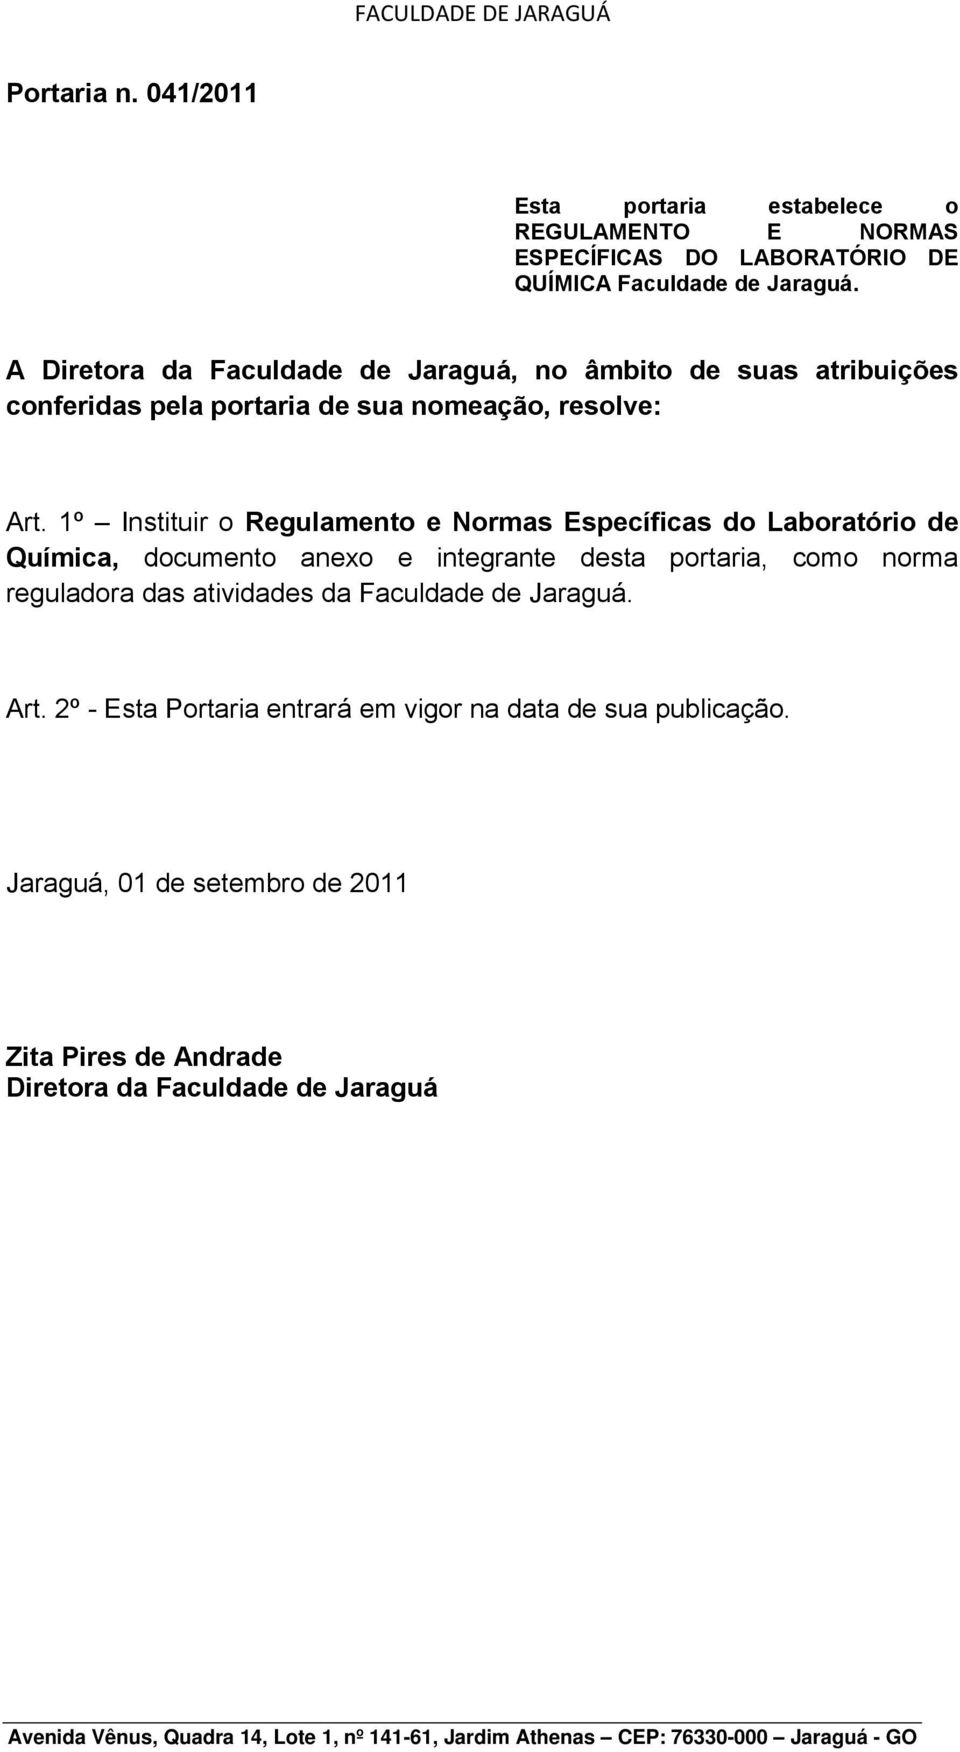 1º Instituir o Regulamento e Normas Específicas do Laboratório de Química, documento anexo e integrante desta portaria, como norma reguladora das